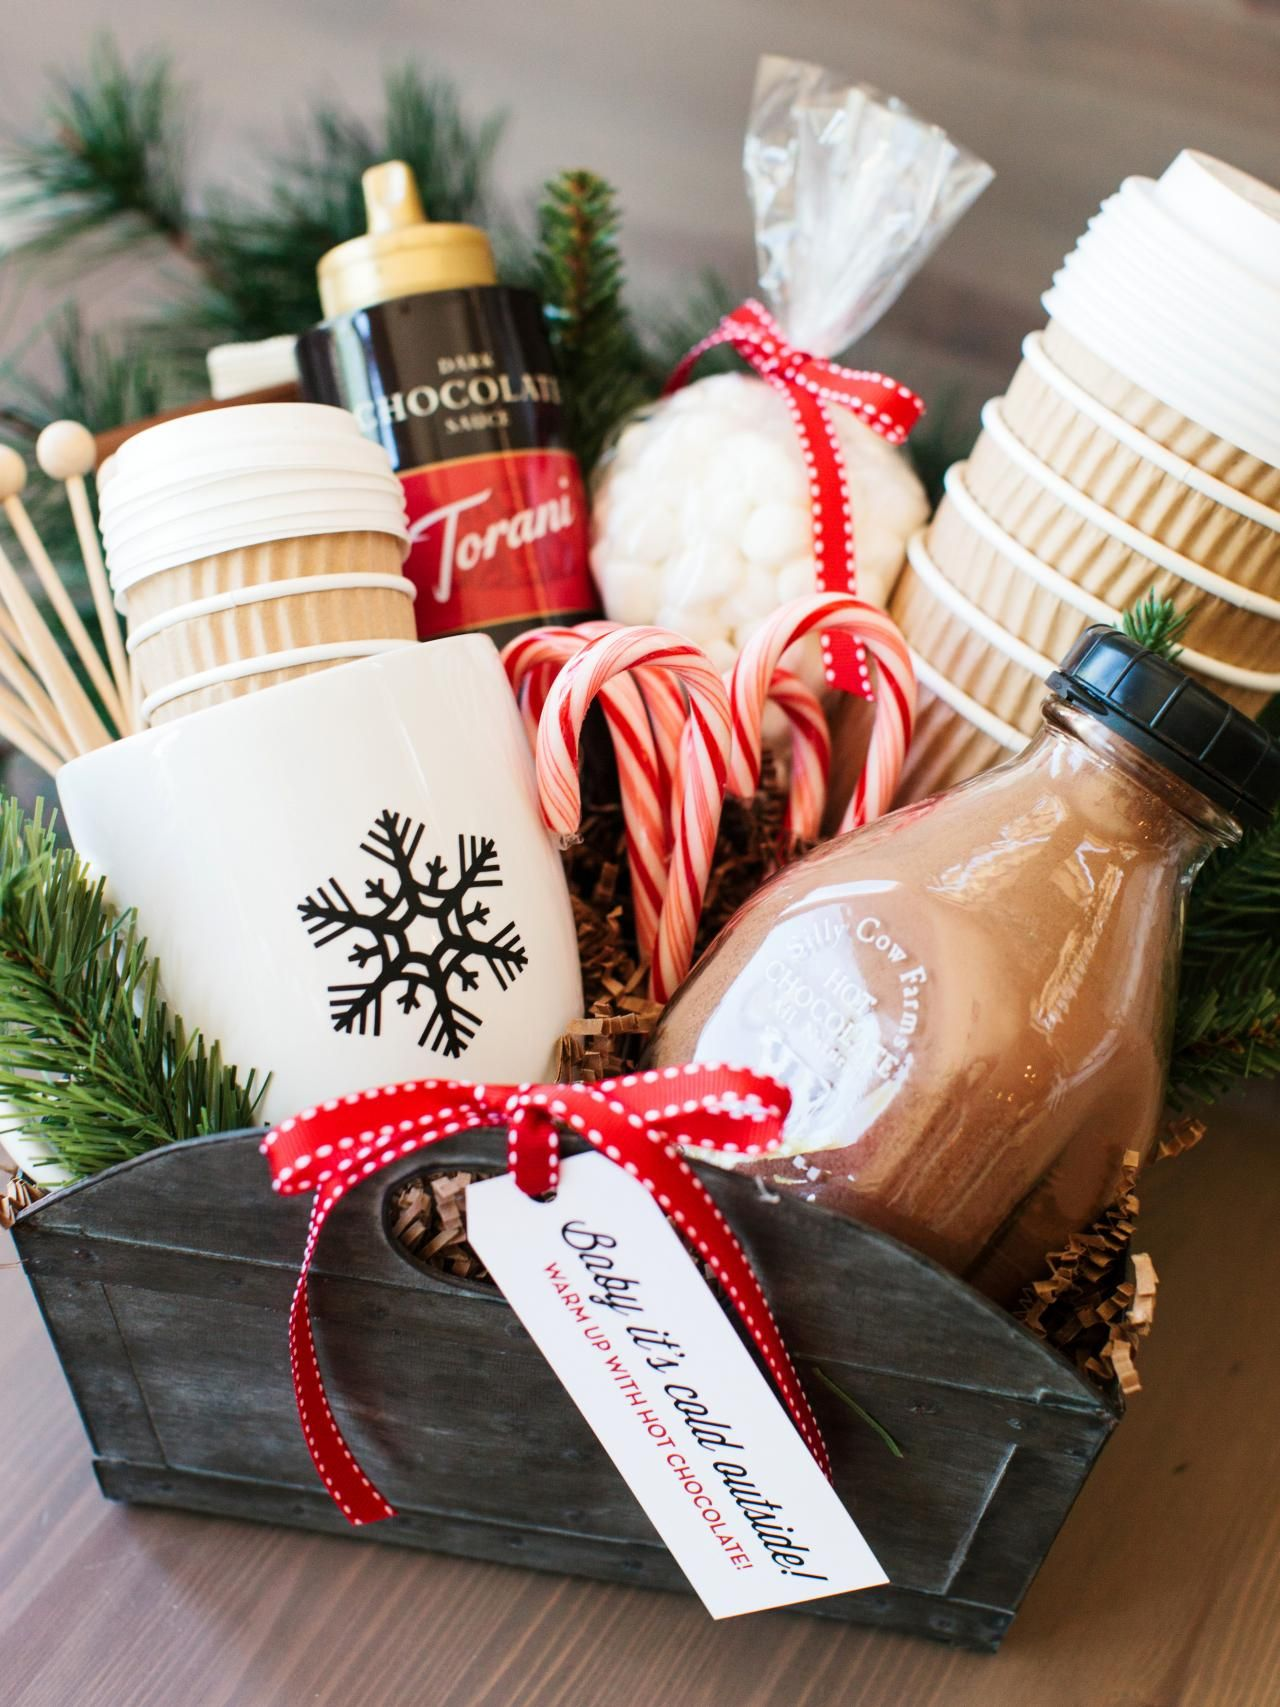 Culinary Gift Basket Ideas | Themed Gift Baskets | Pinterest | Gifts ...